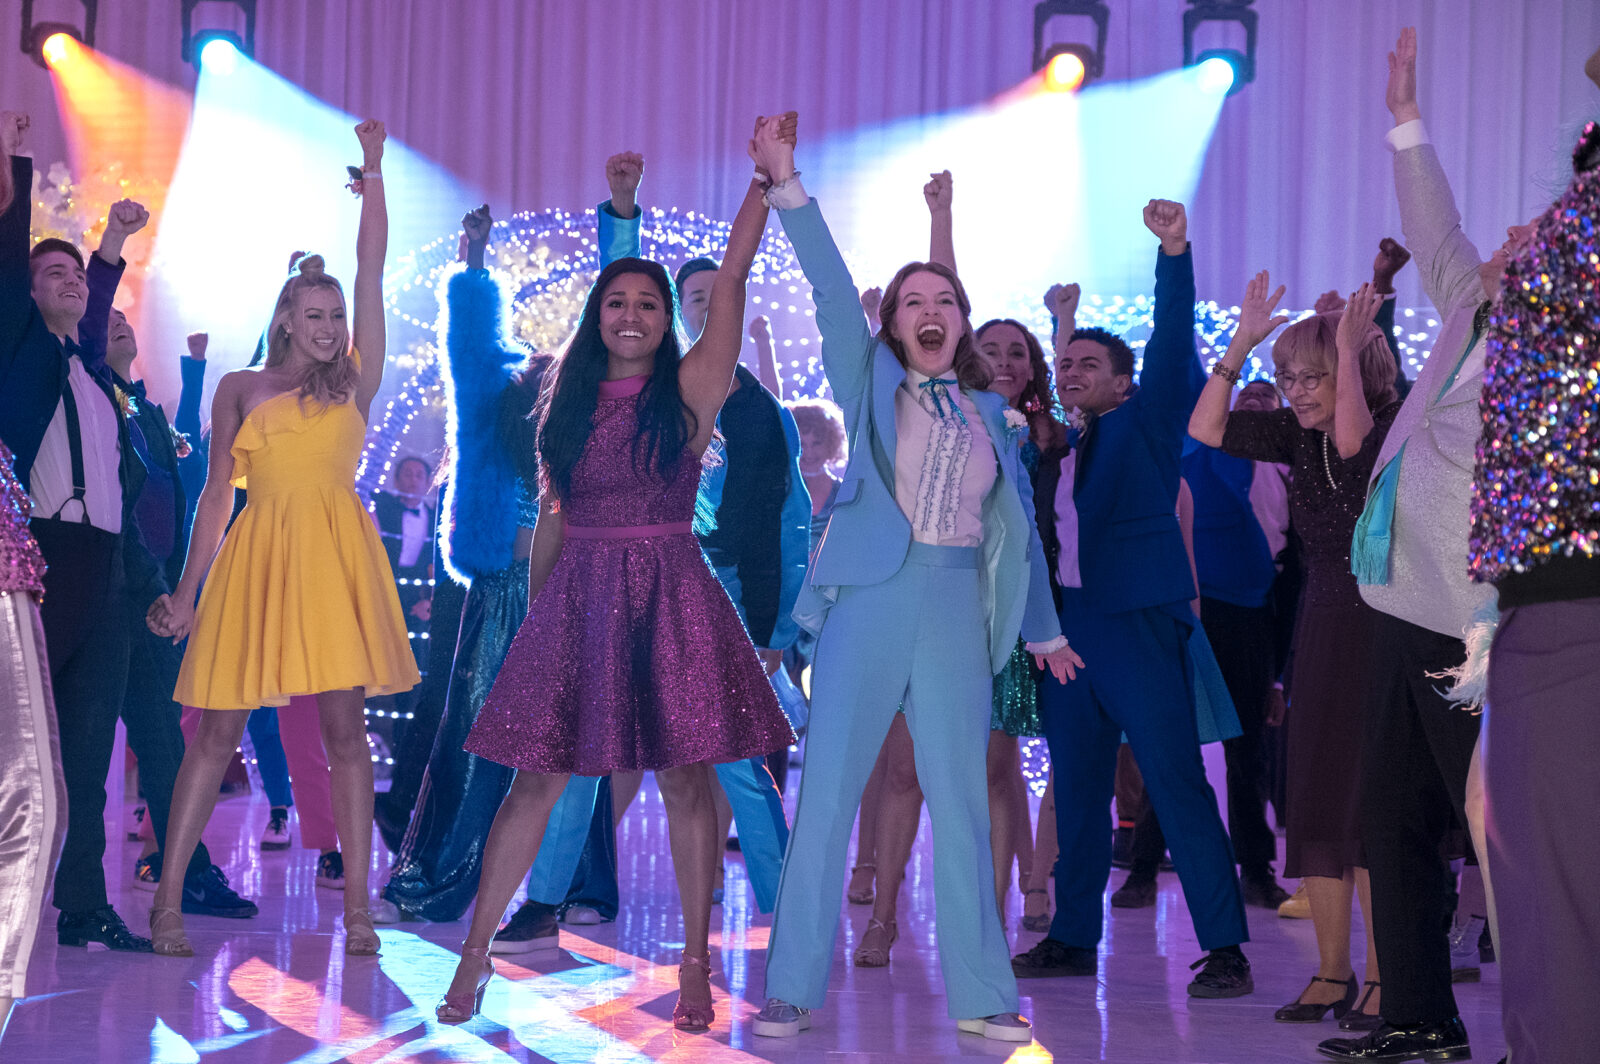 """Image from """"The Prom"""". Courtesy of Netflix"""